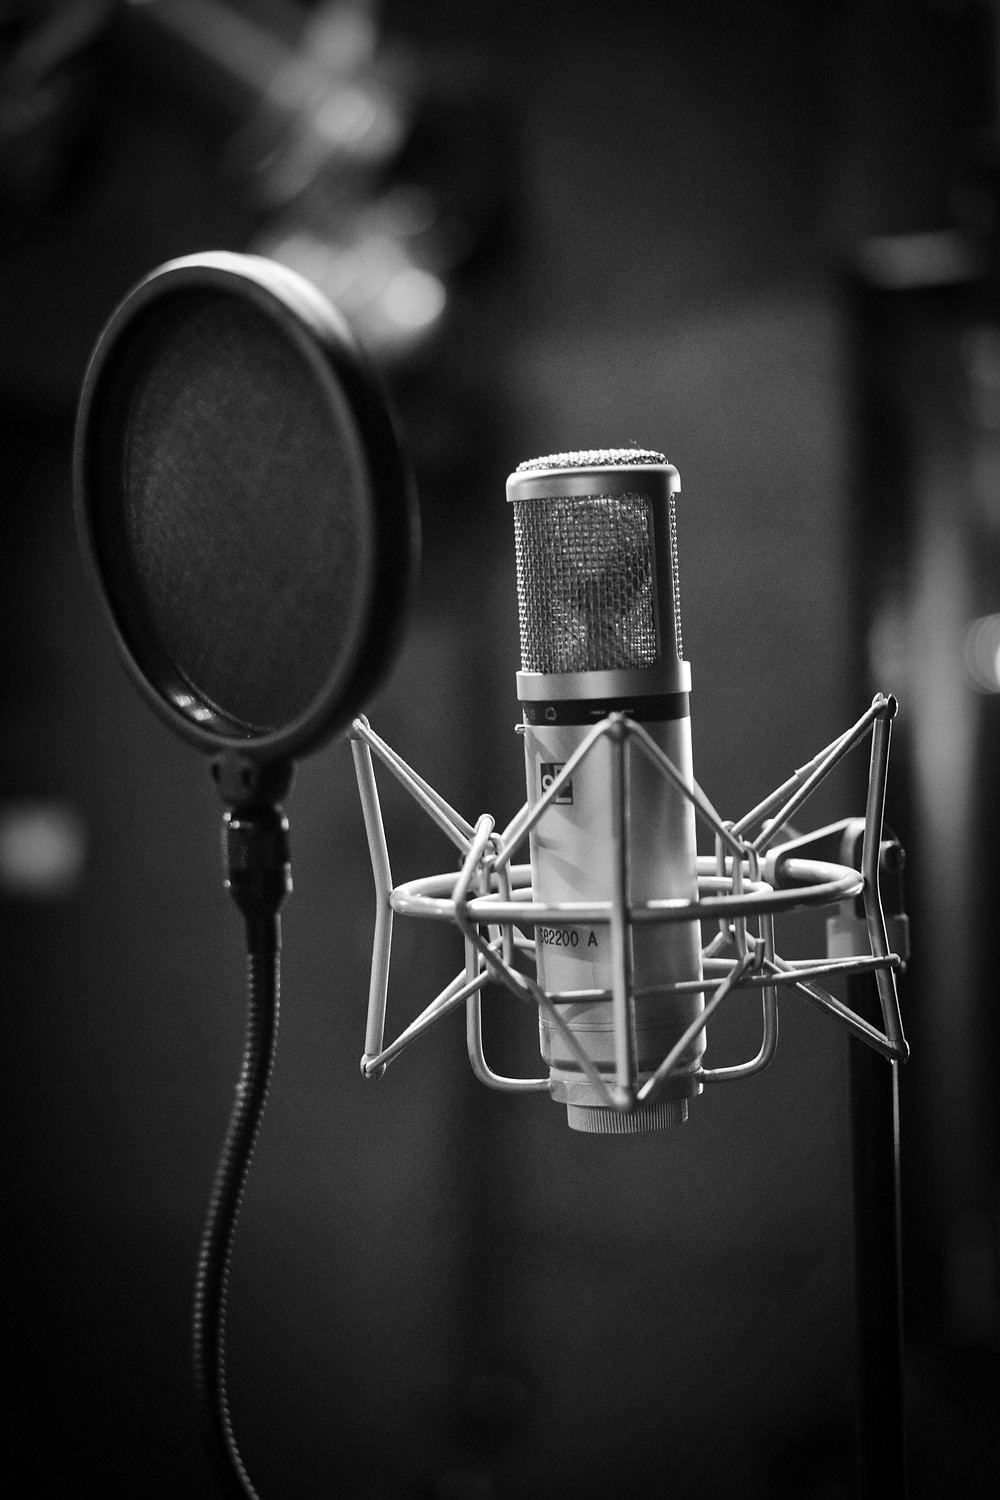 podcast microphone in black and white